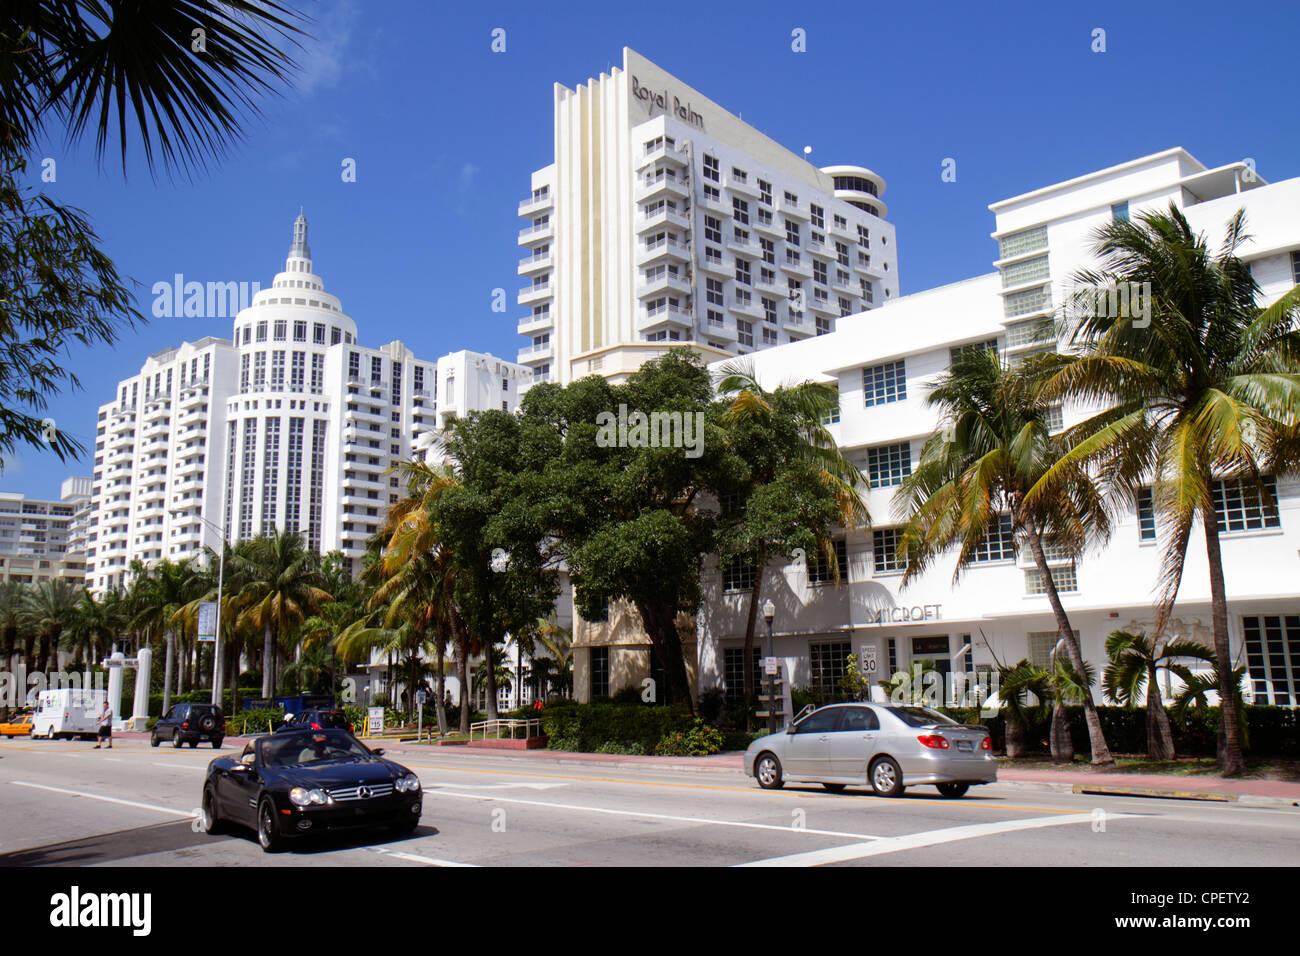 Pictures of royal palm beach florida hotel